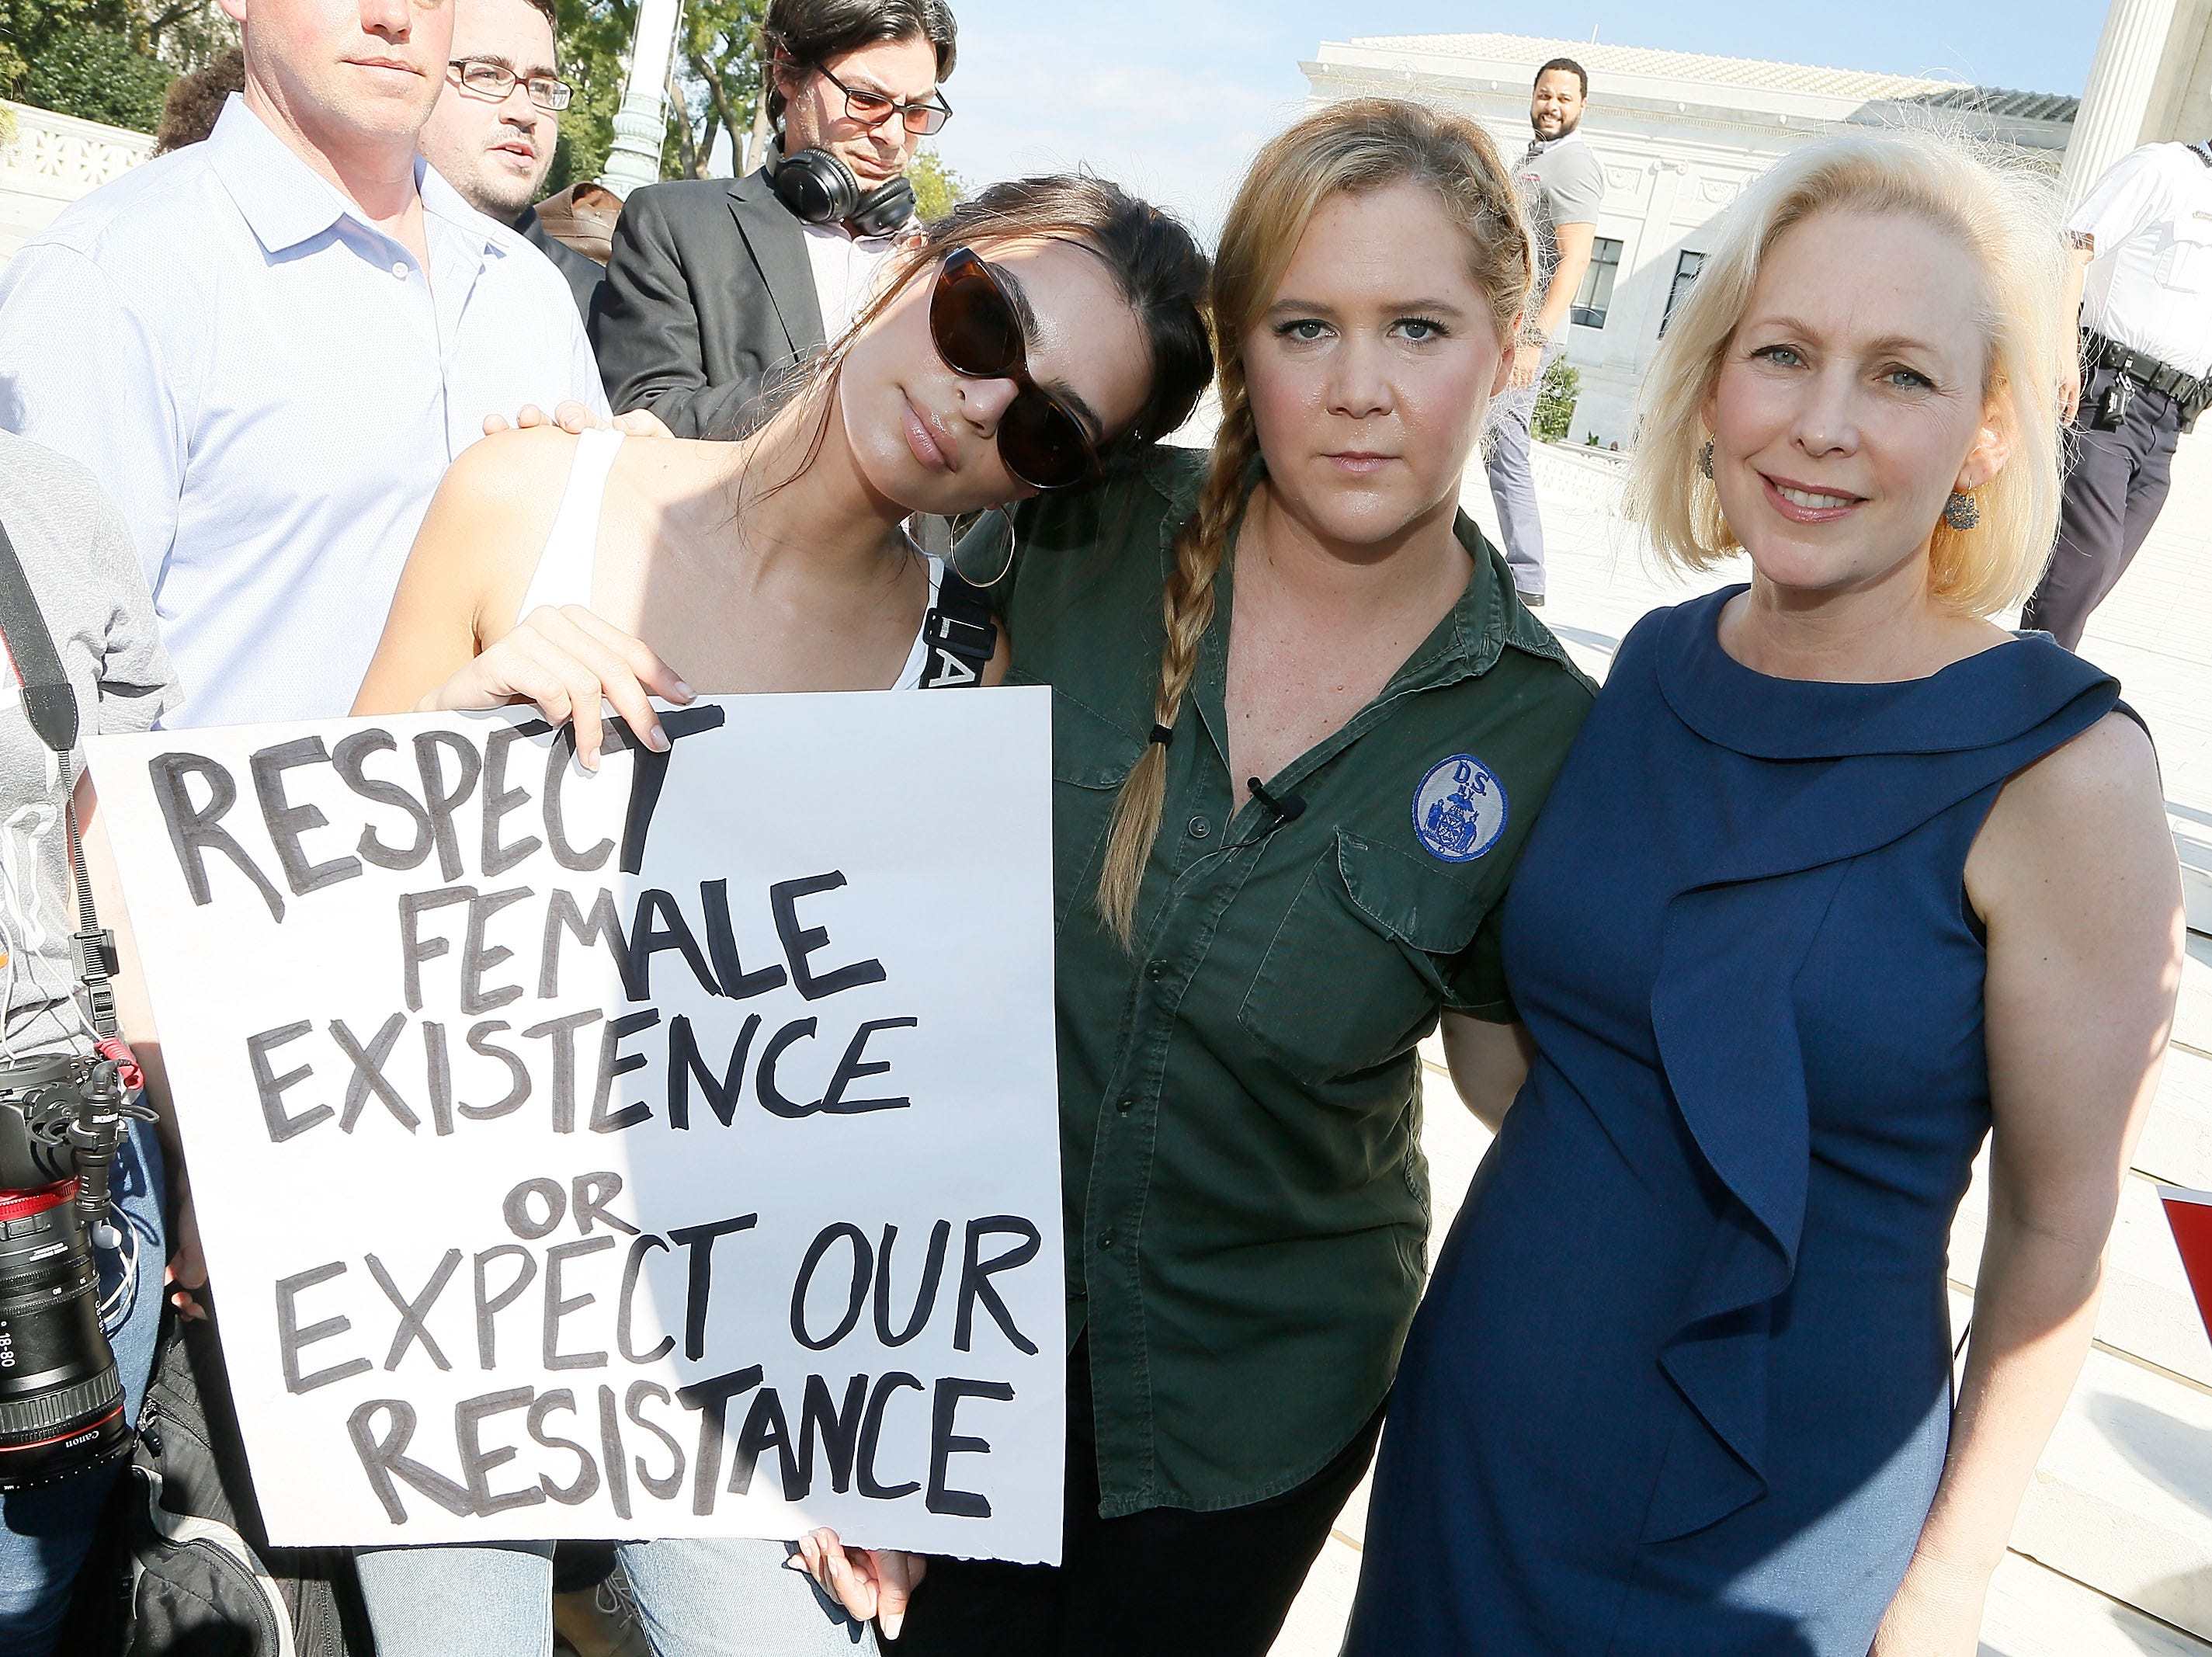 WASHINGTON, DC - OCTOBER 04:  (L to R) Model and actress Emily Ratajkowski; actress and comedian Amy Schumer; and  Sen. Kirsten Gillibrand (D-NY) join the Brett Kavanaugh U.S. Supreme Court Confirmation Protest in front of the Supreme Court on October 4, 2018 in Washington, DC.  (Photo by Paul Morigi/WireImage) ORG XMIT: 775237808 ORIG FILE ID: 1045666158